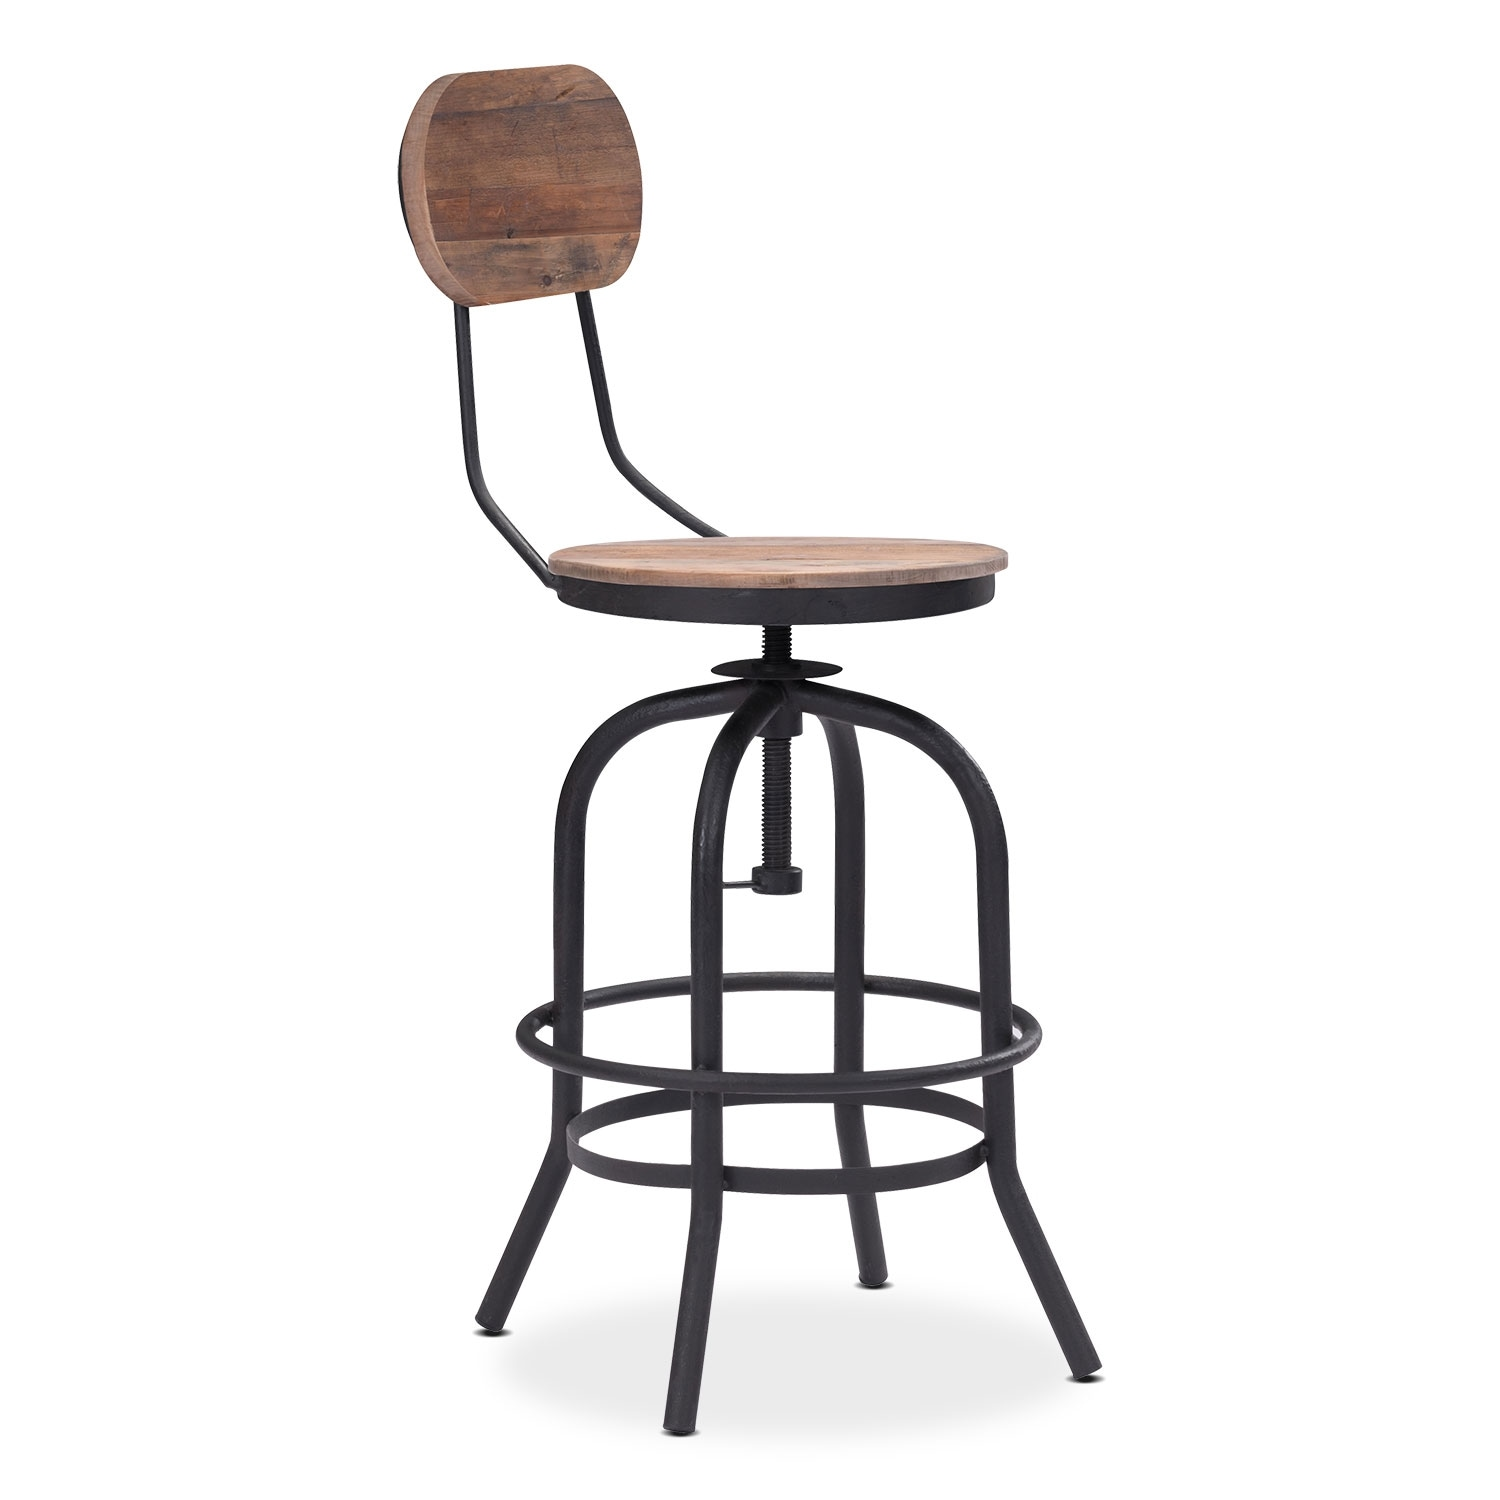 Elston Adjustable Counter-Height Stool - Antiqued Black